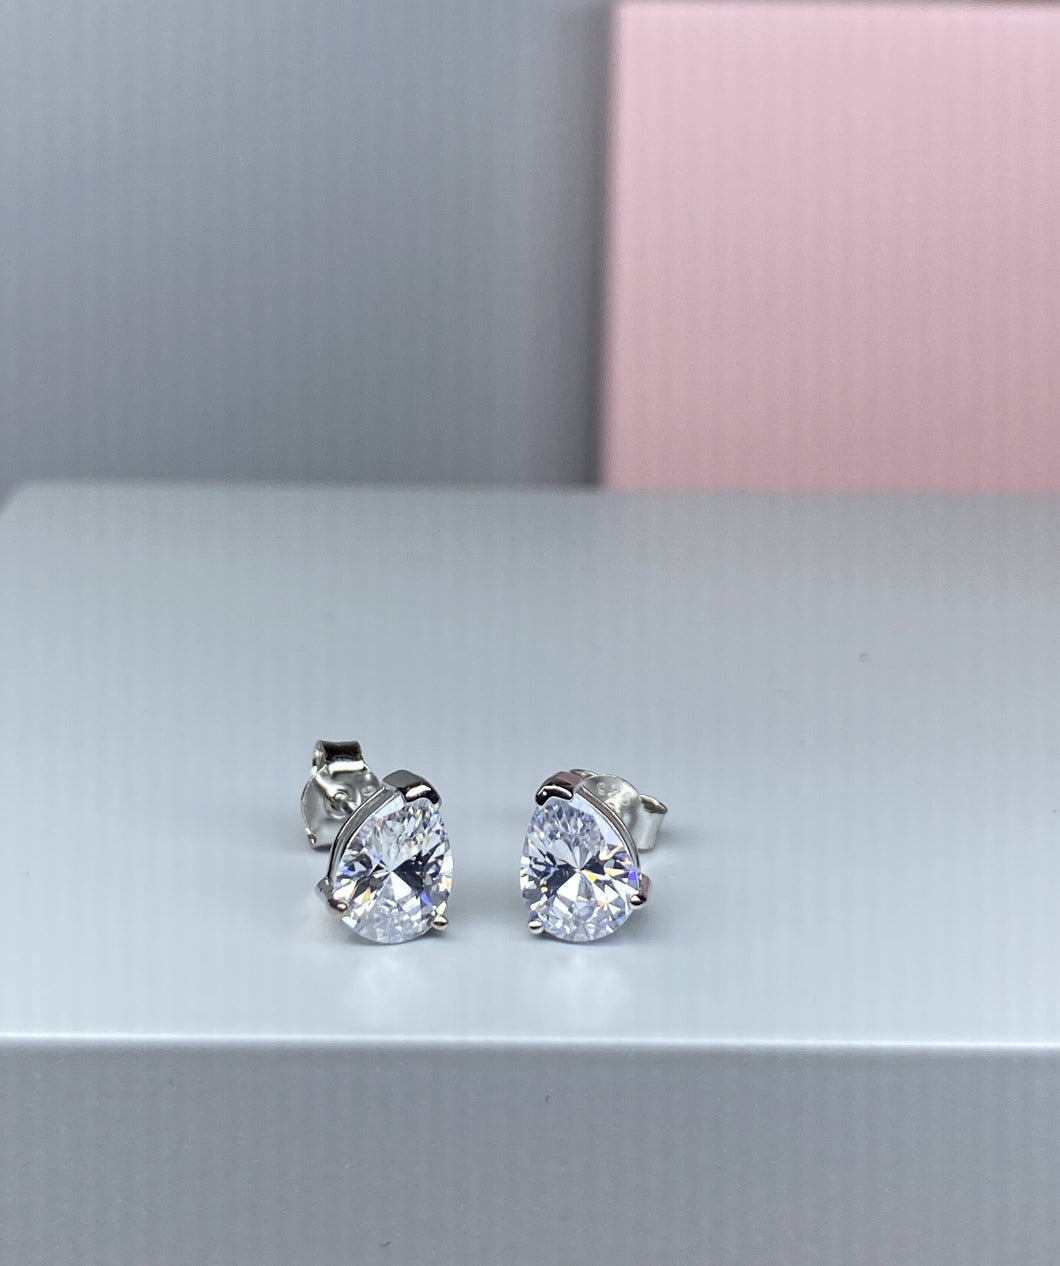 Sterling Silver Pear Shape CZ Earrings - 8.5mm